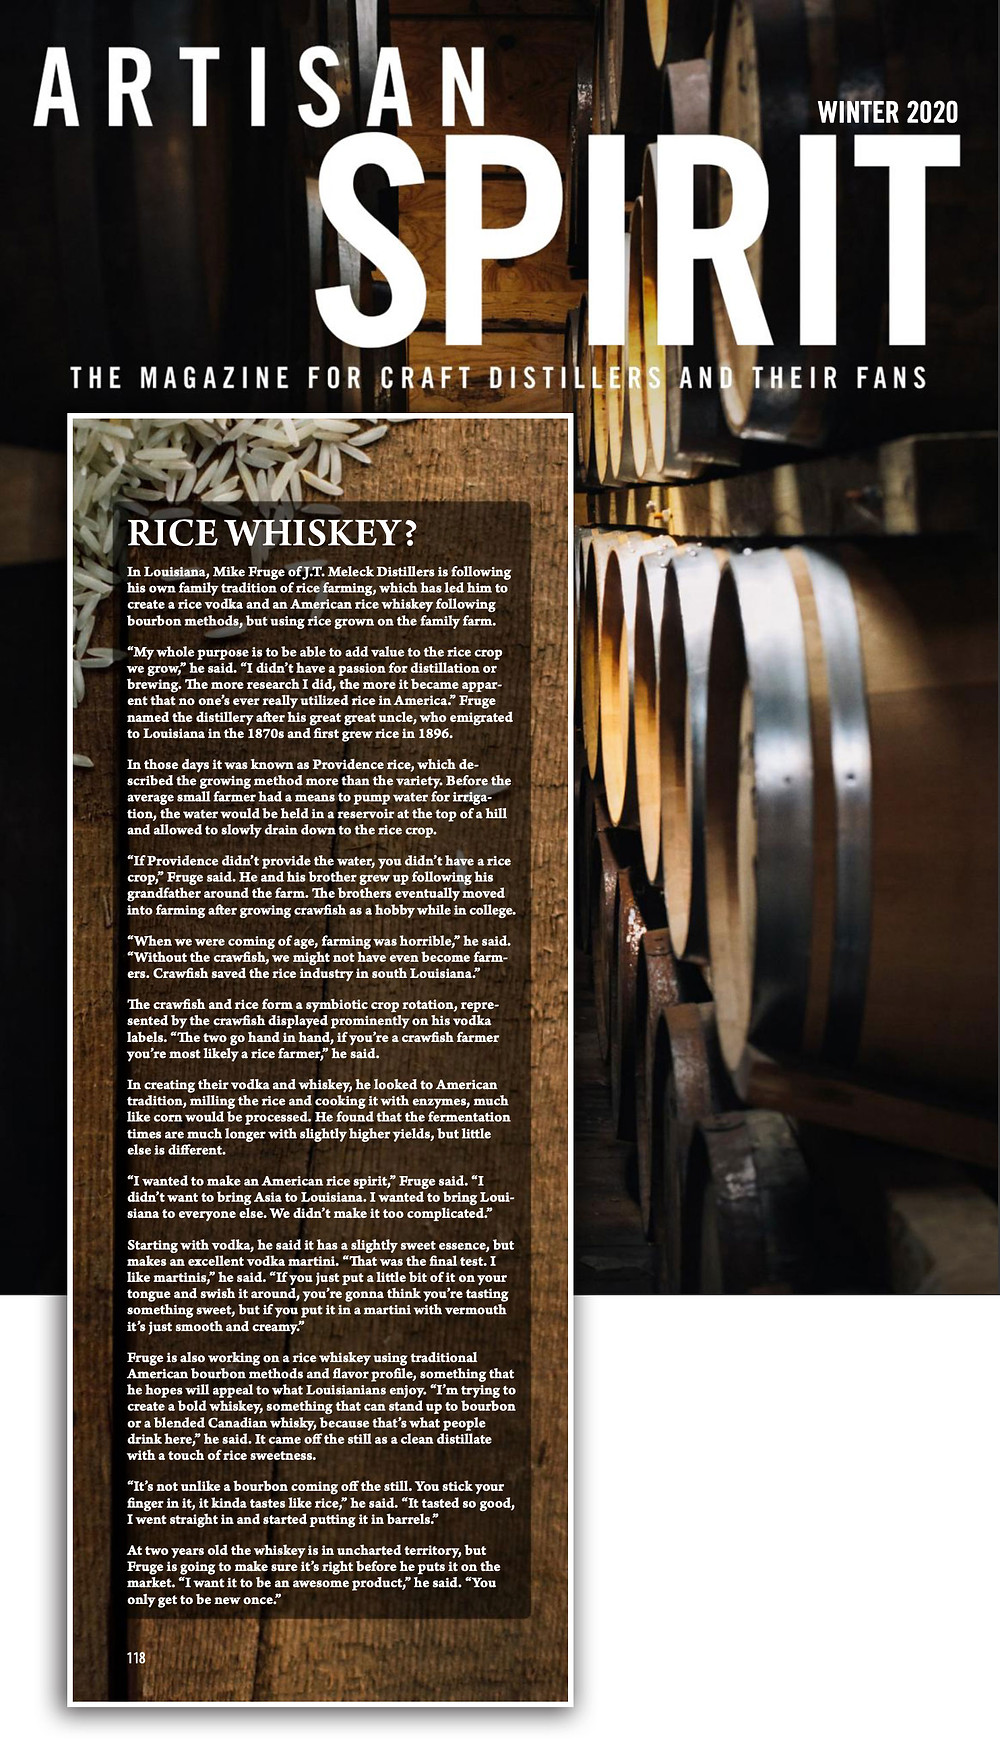 Artisian Spirits Magazine (Winter 2020 issue) Written by Gabe Toth